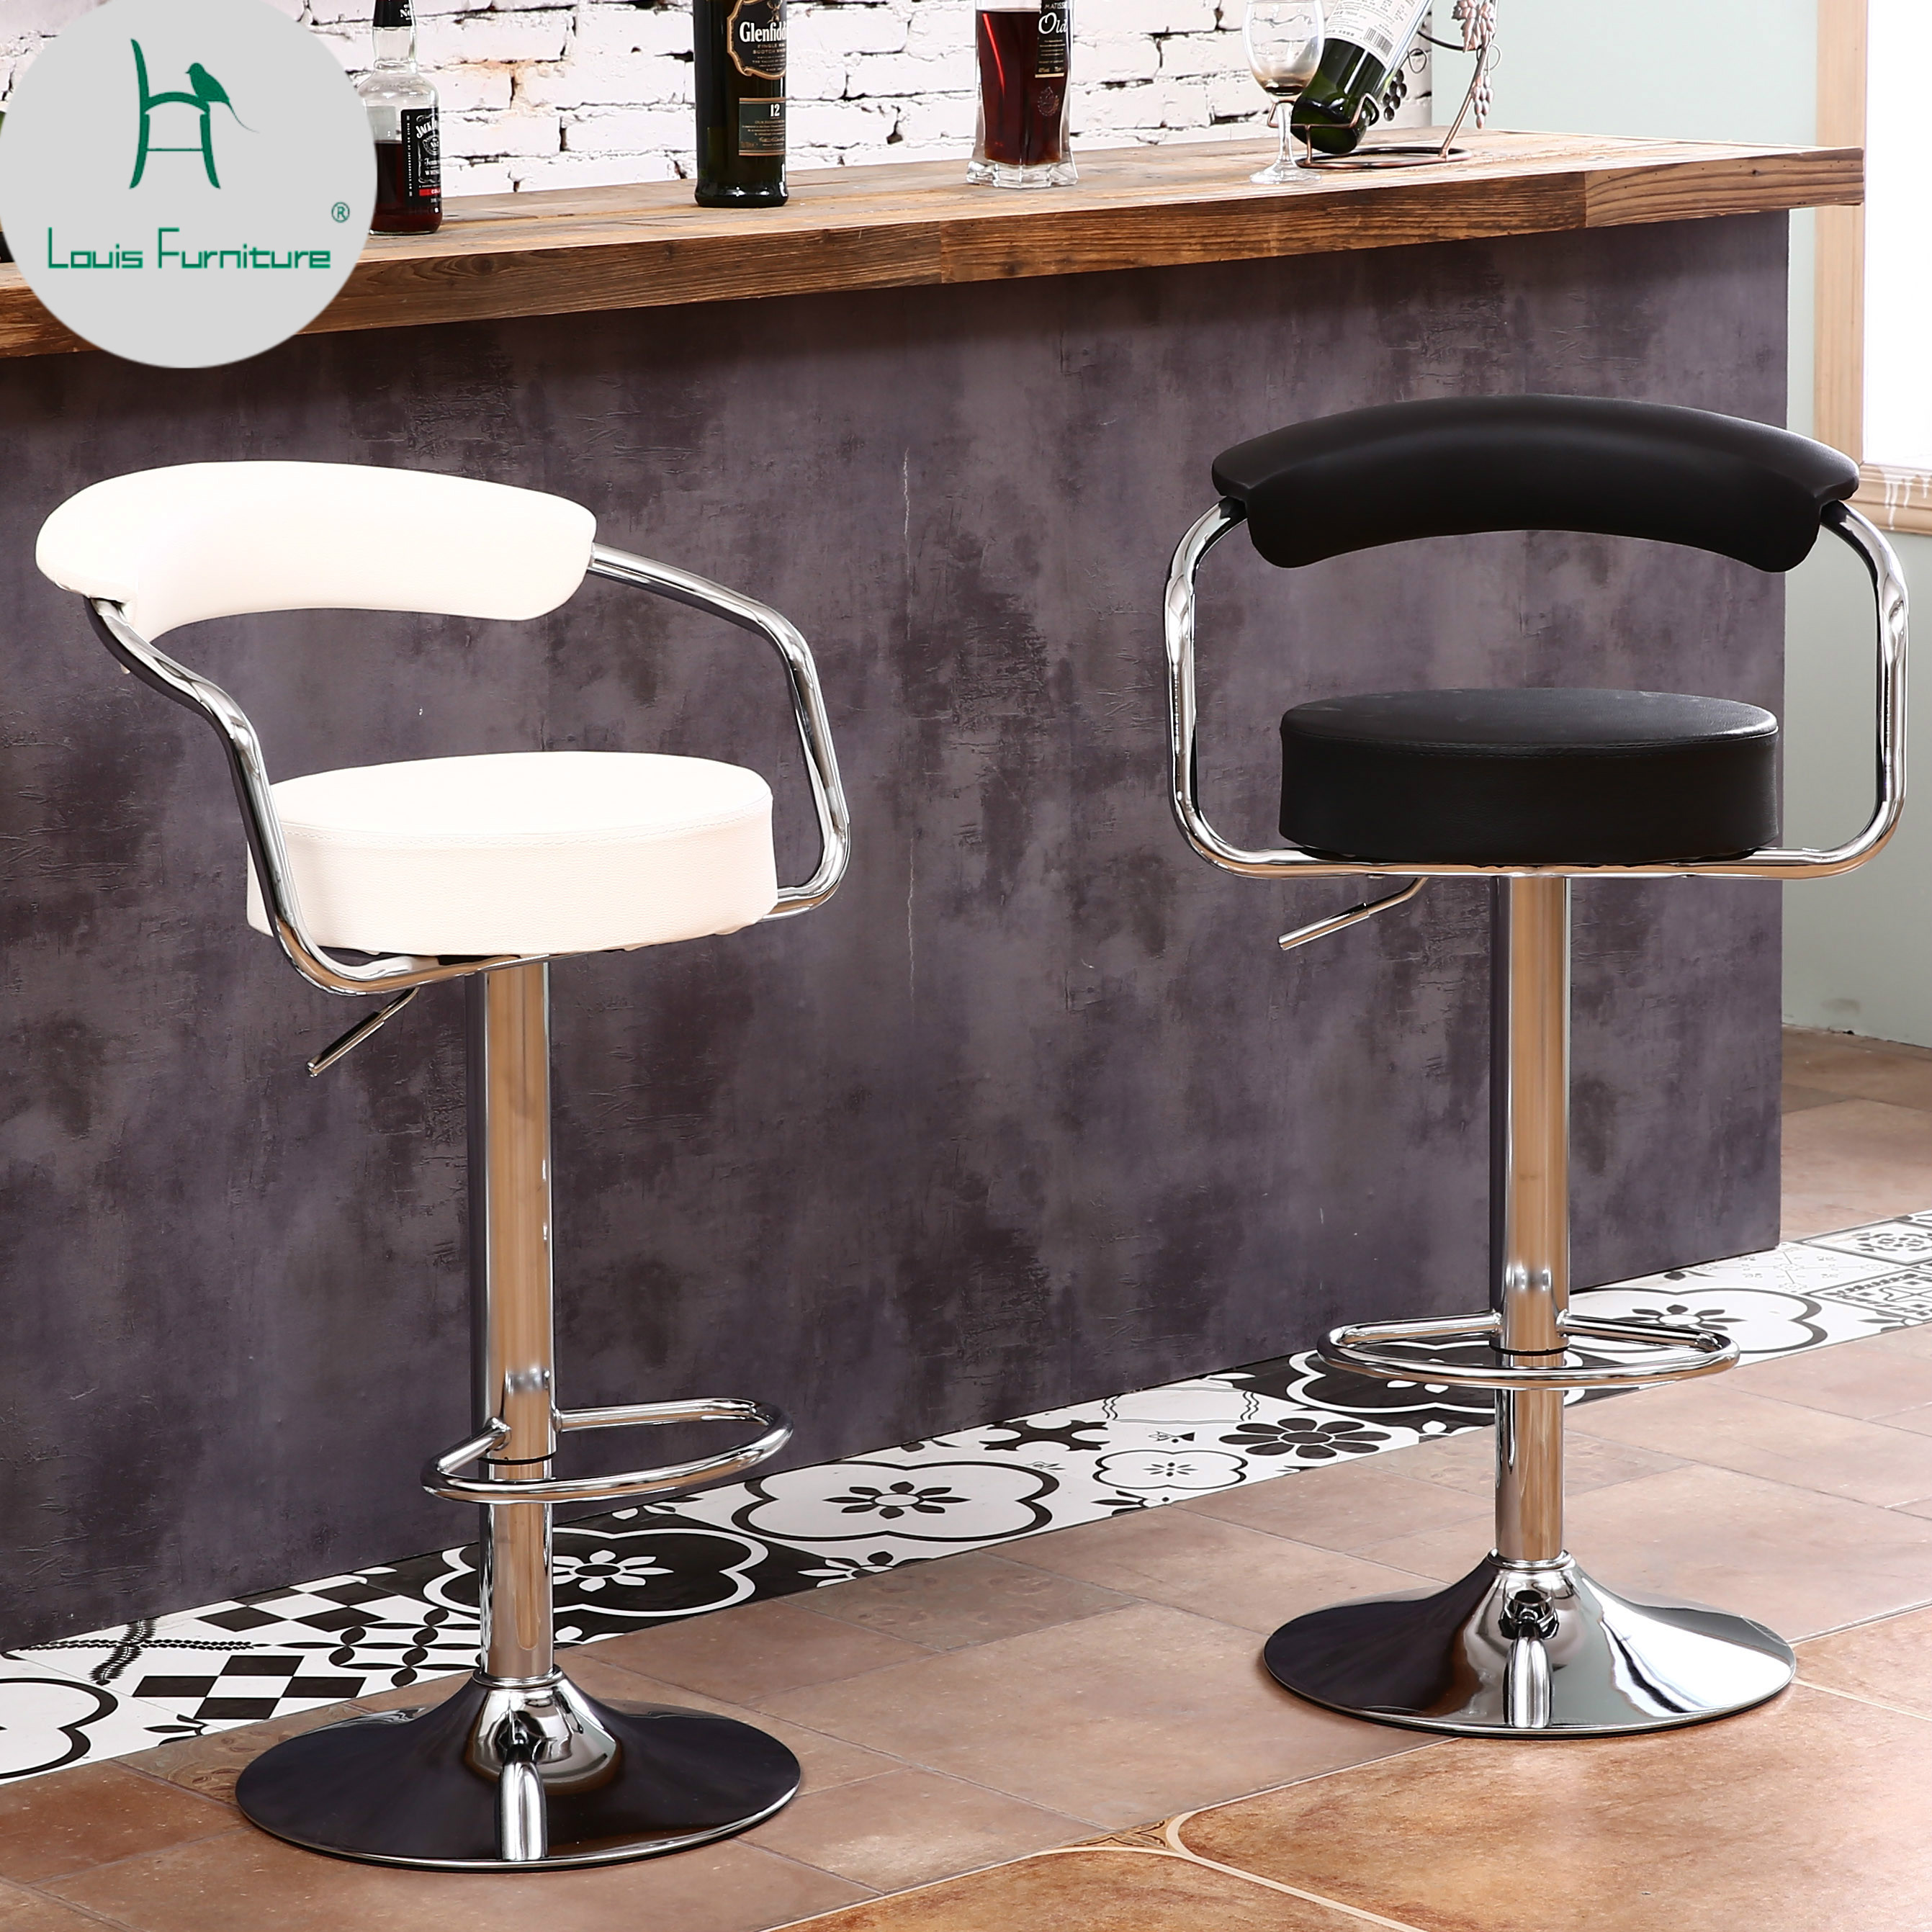 European Unique Design Simple Fashion Pu Backrest Bar Chair Lifting Stool Bar Height Adjustable Free Shipping And Digestion Helping Bar Chairs Furniture